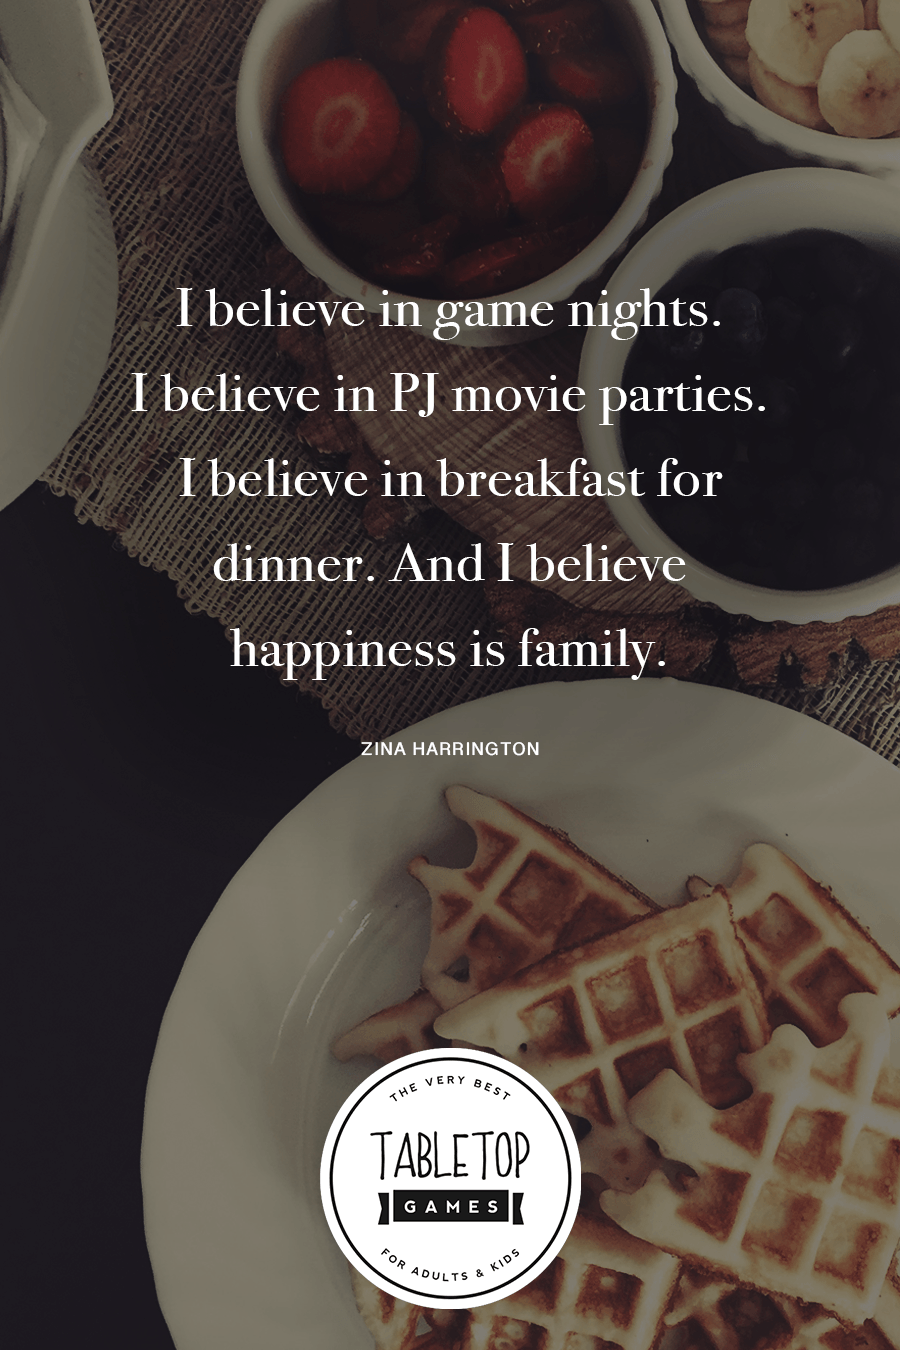 I believe in game nights. I believe in PJ movie parties. I believe in breakfast for dinner. And I believe happiness is family. #quote #gamenight #familygames *loving this Best Games For Families website!